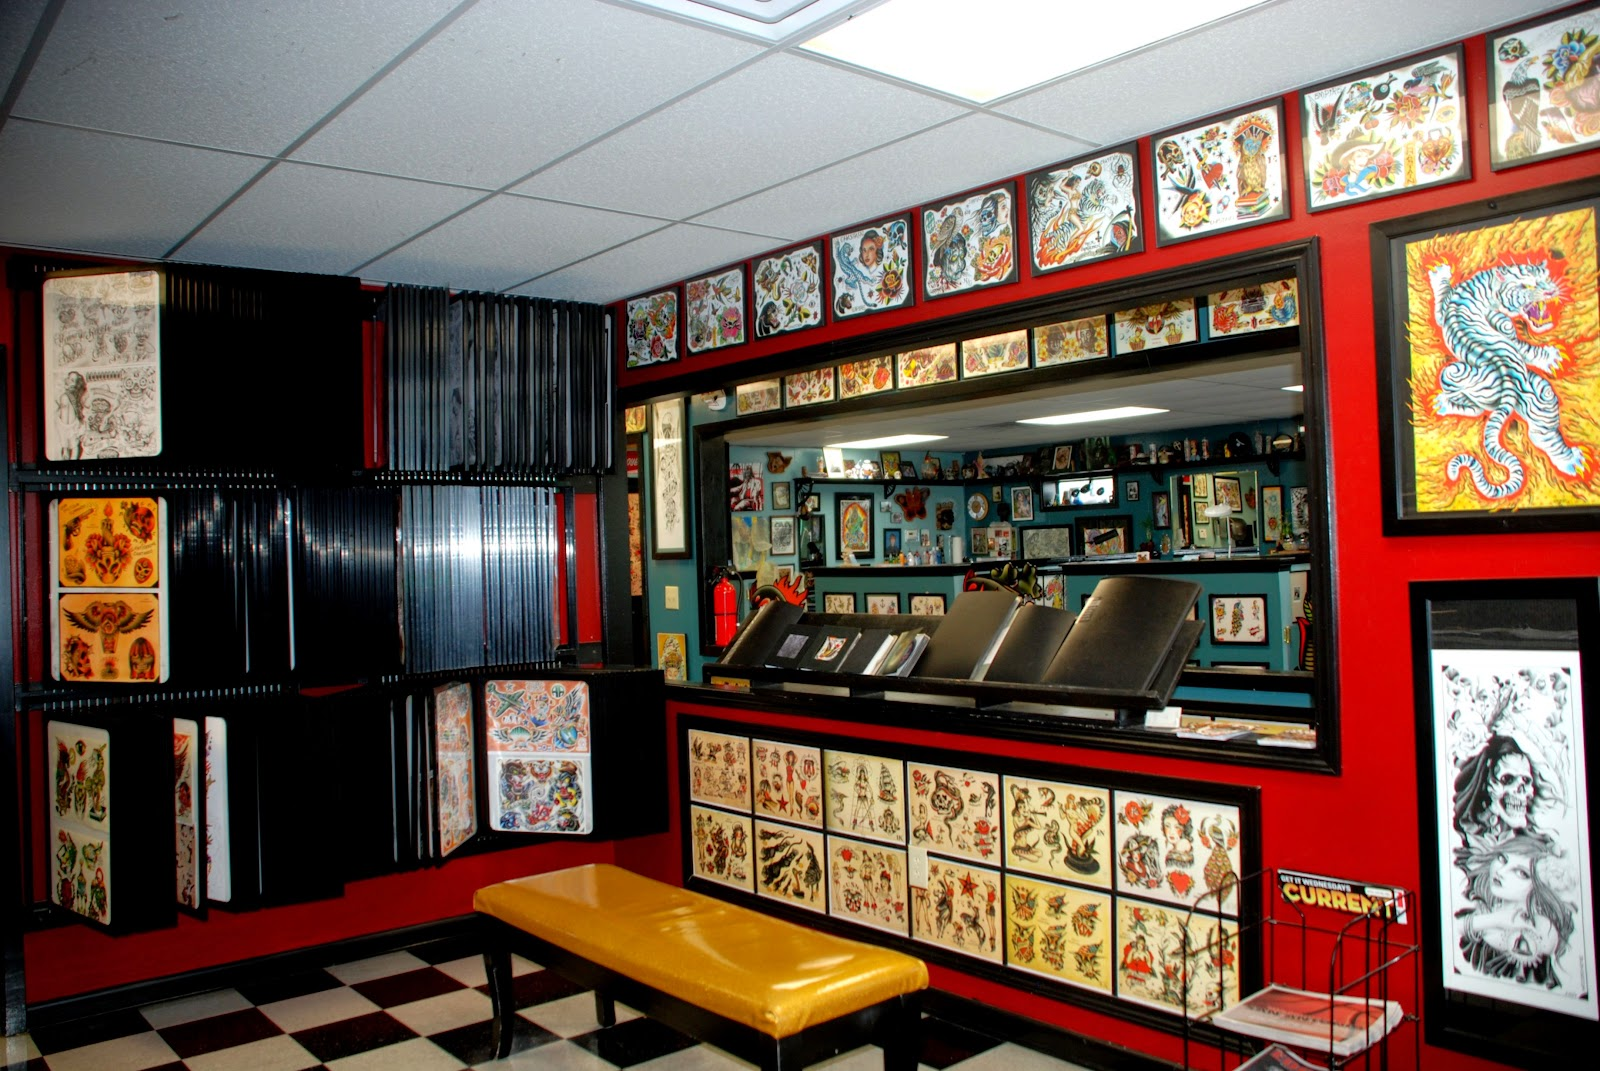 Ancient art tattoo and body piercing studios roanoke va for Tattoo shops roanoke va